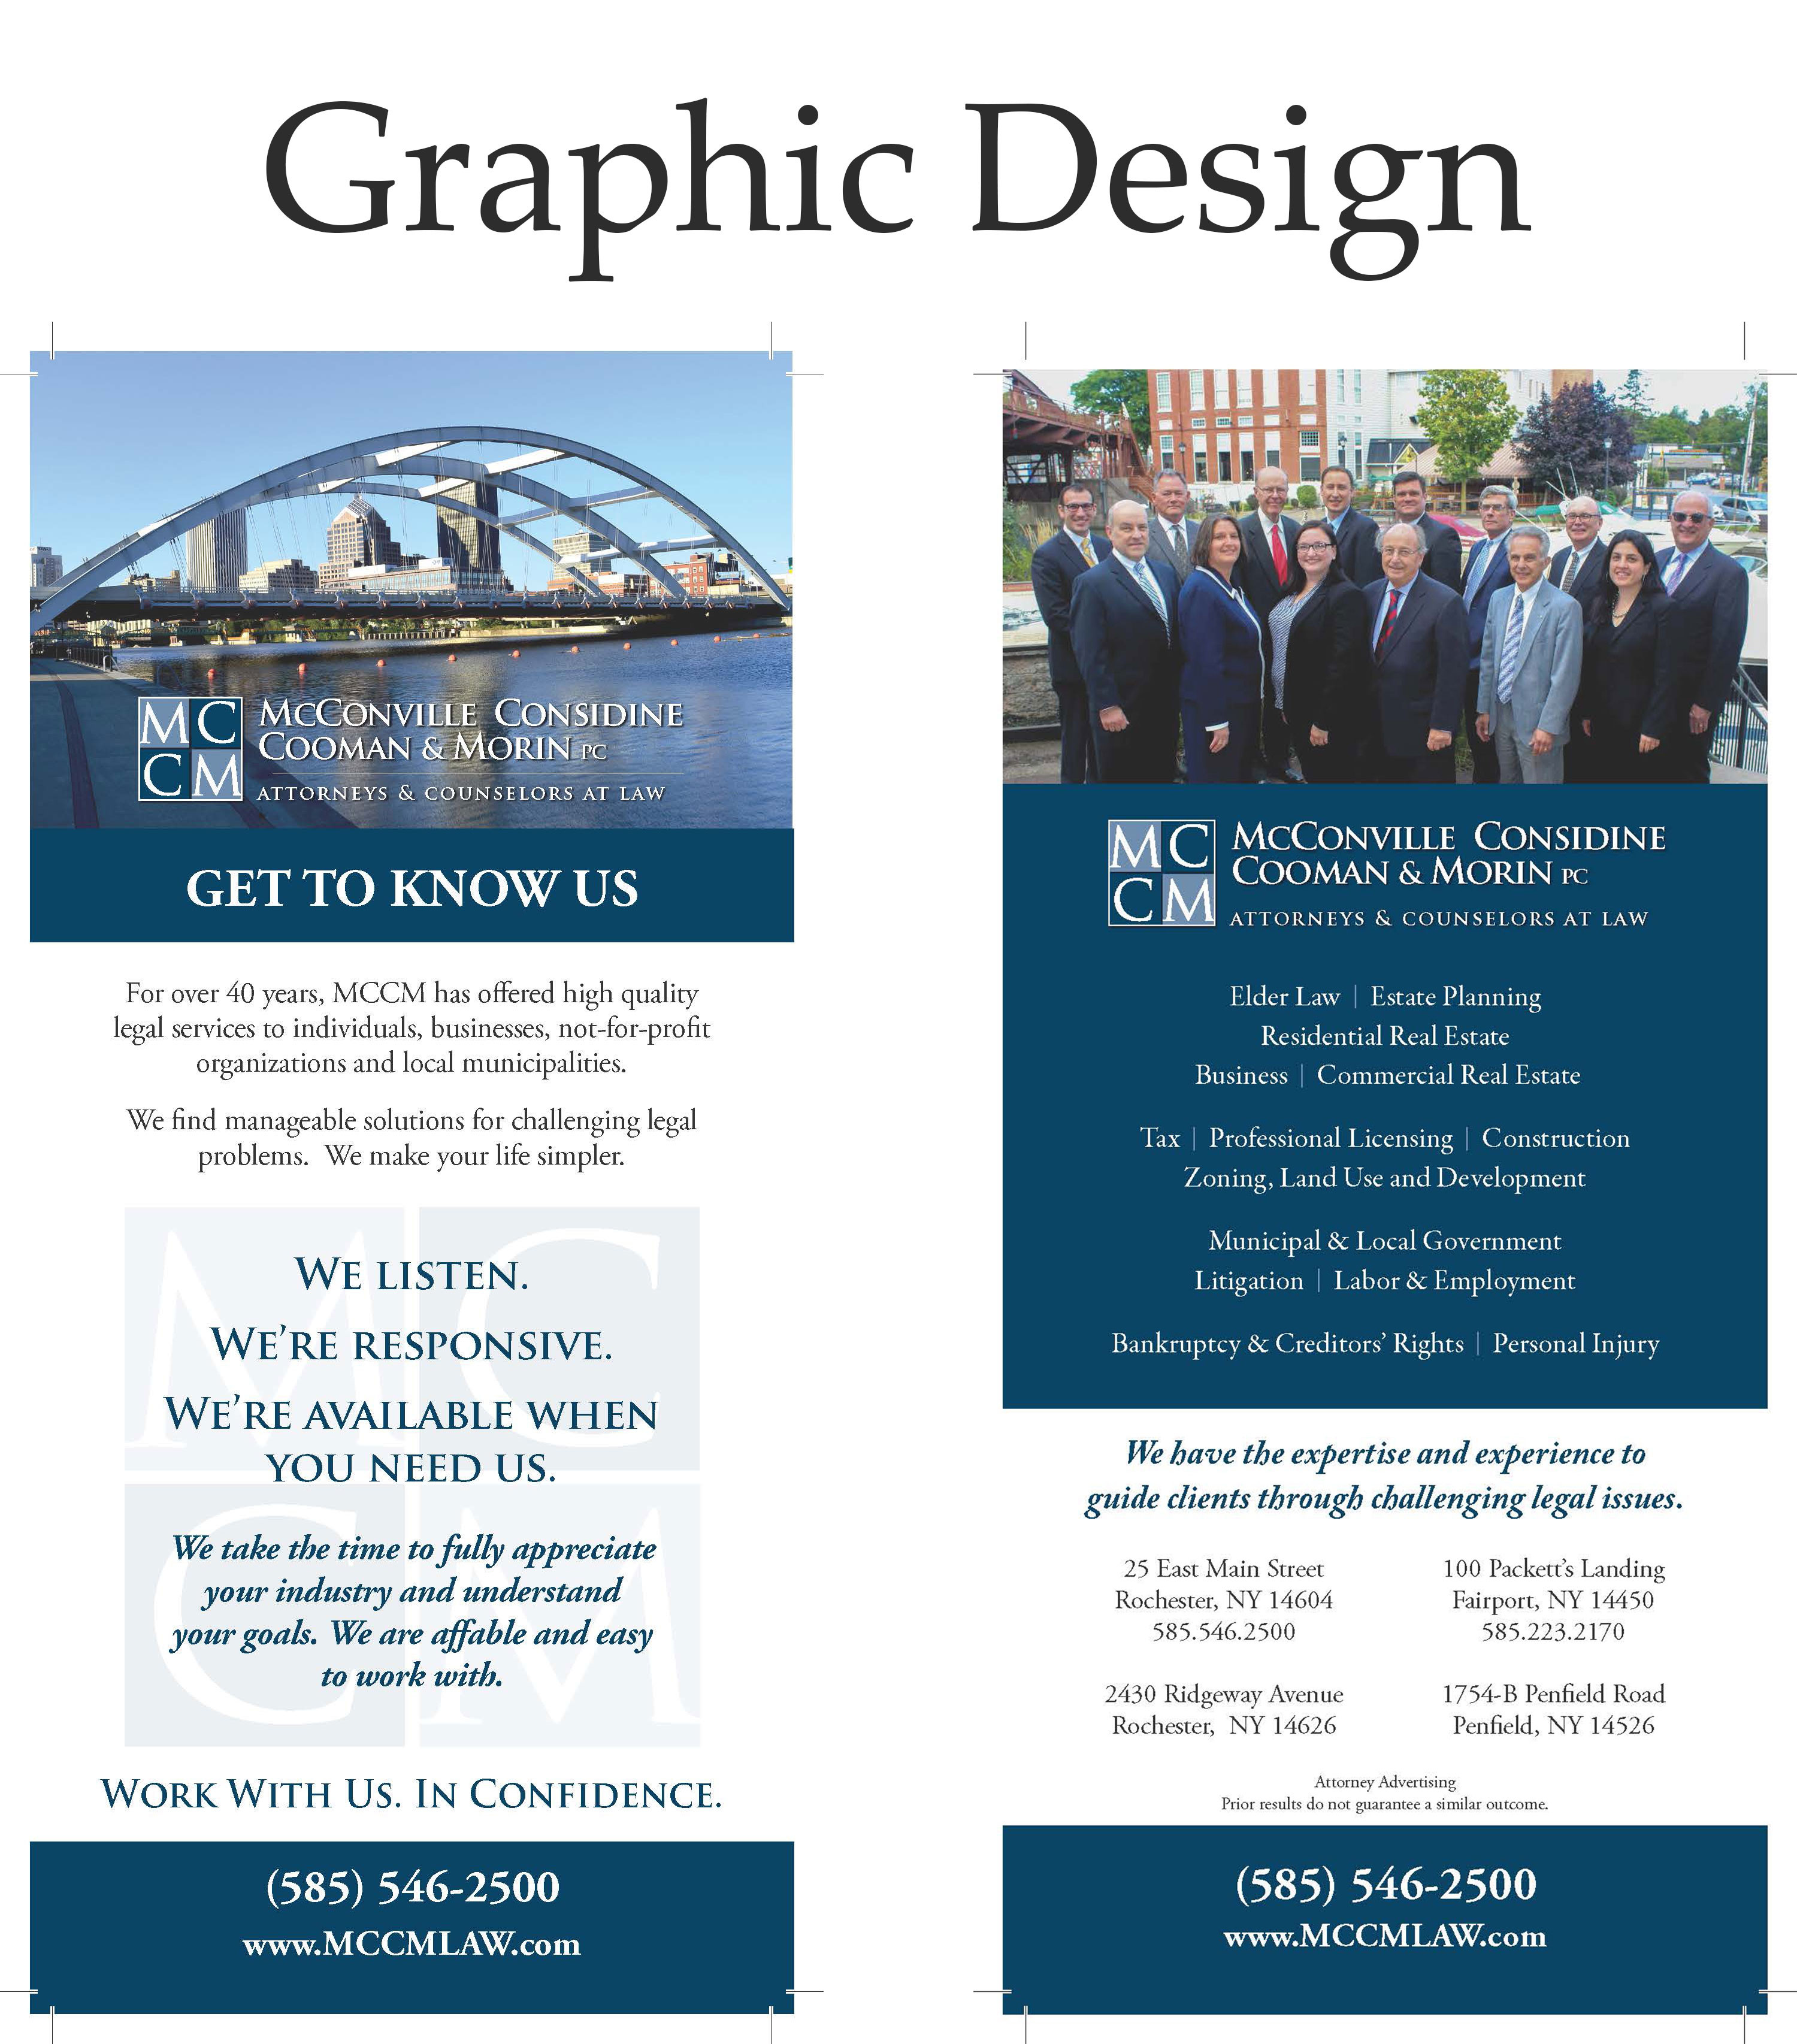 Graphic Design Example - Edge Advertising Group